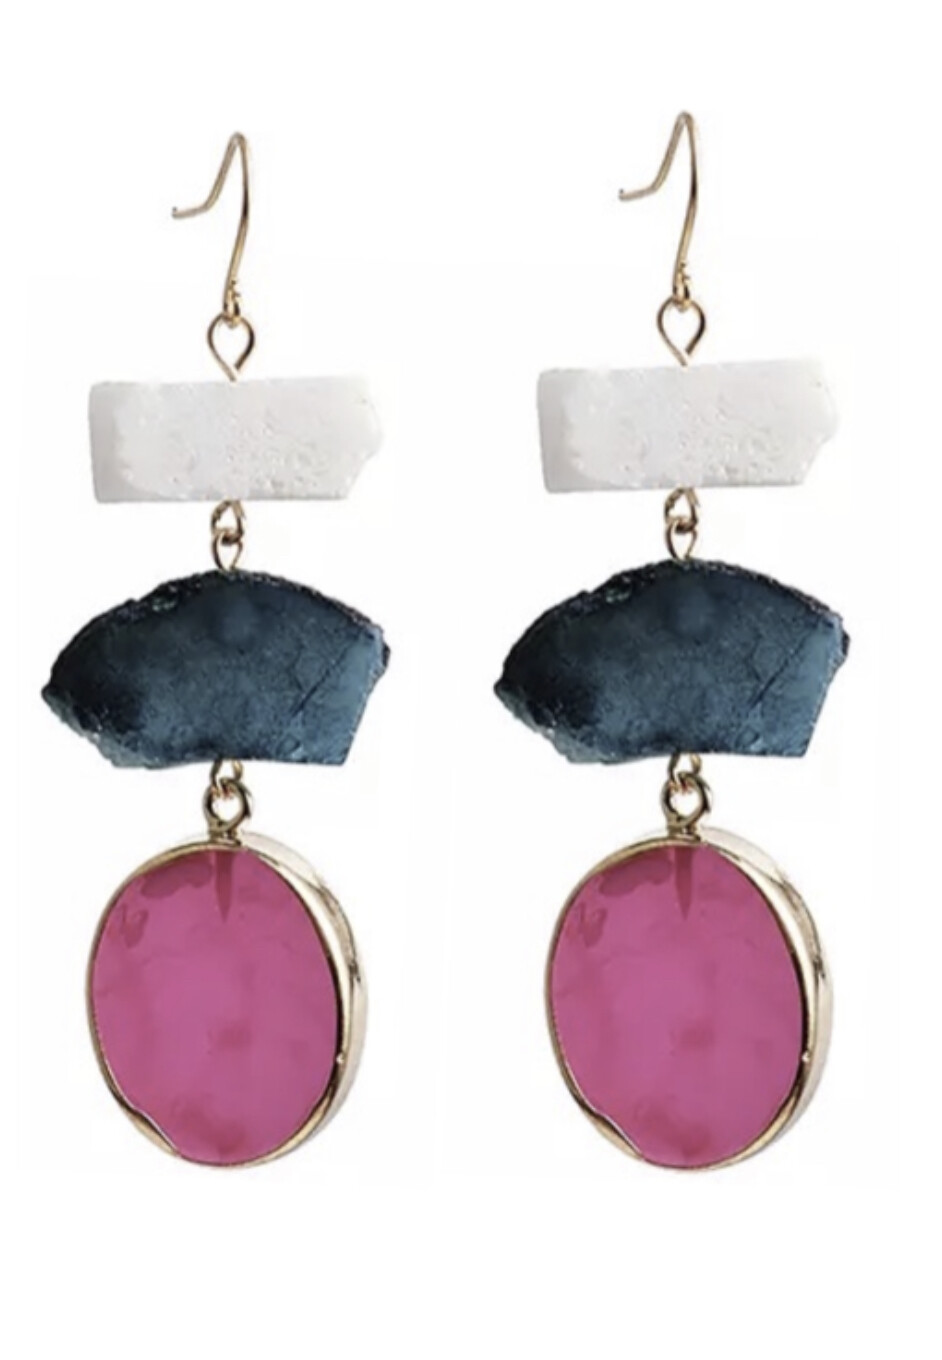 TRIPLE ON THE ROCKS DROPS EARRINGS